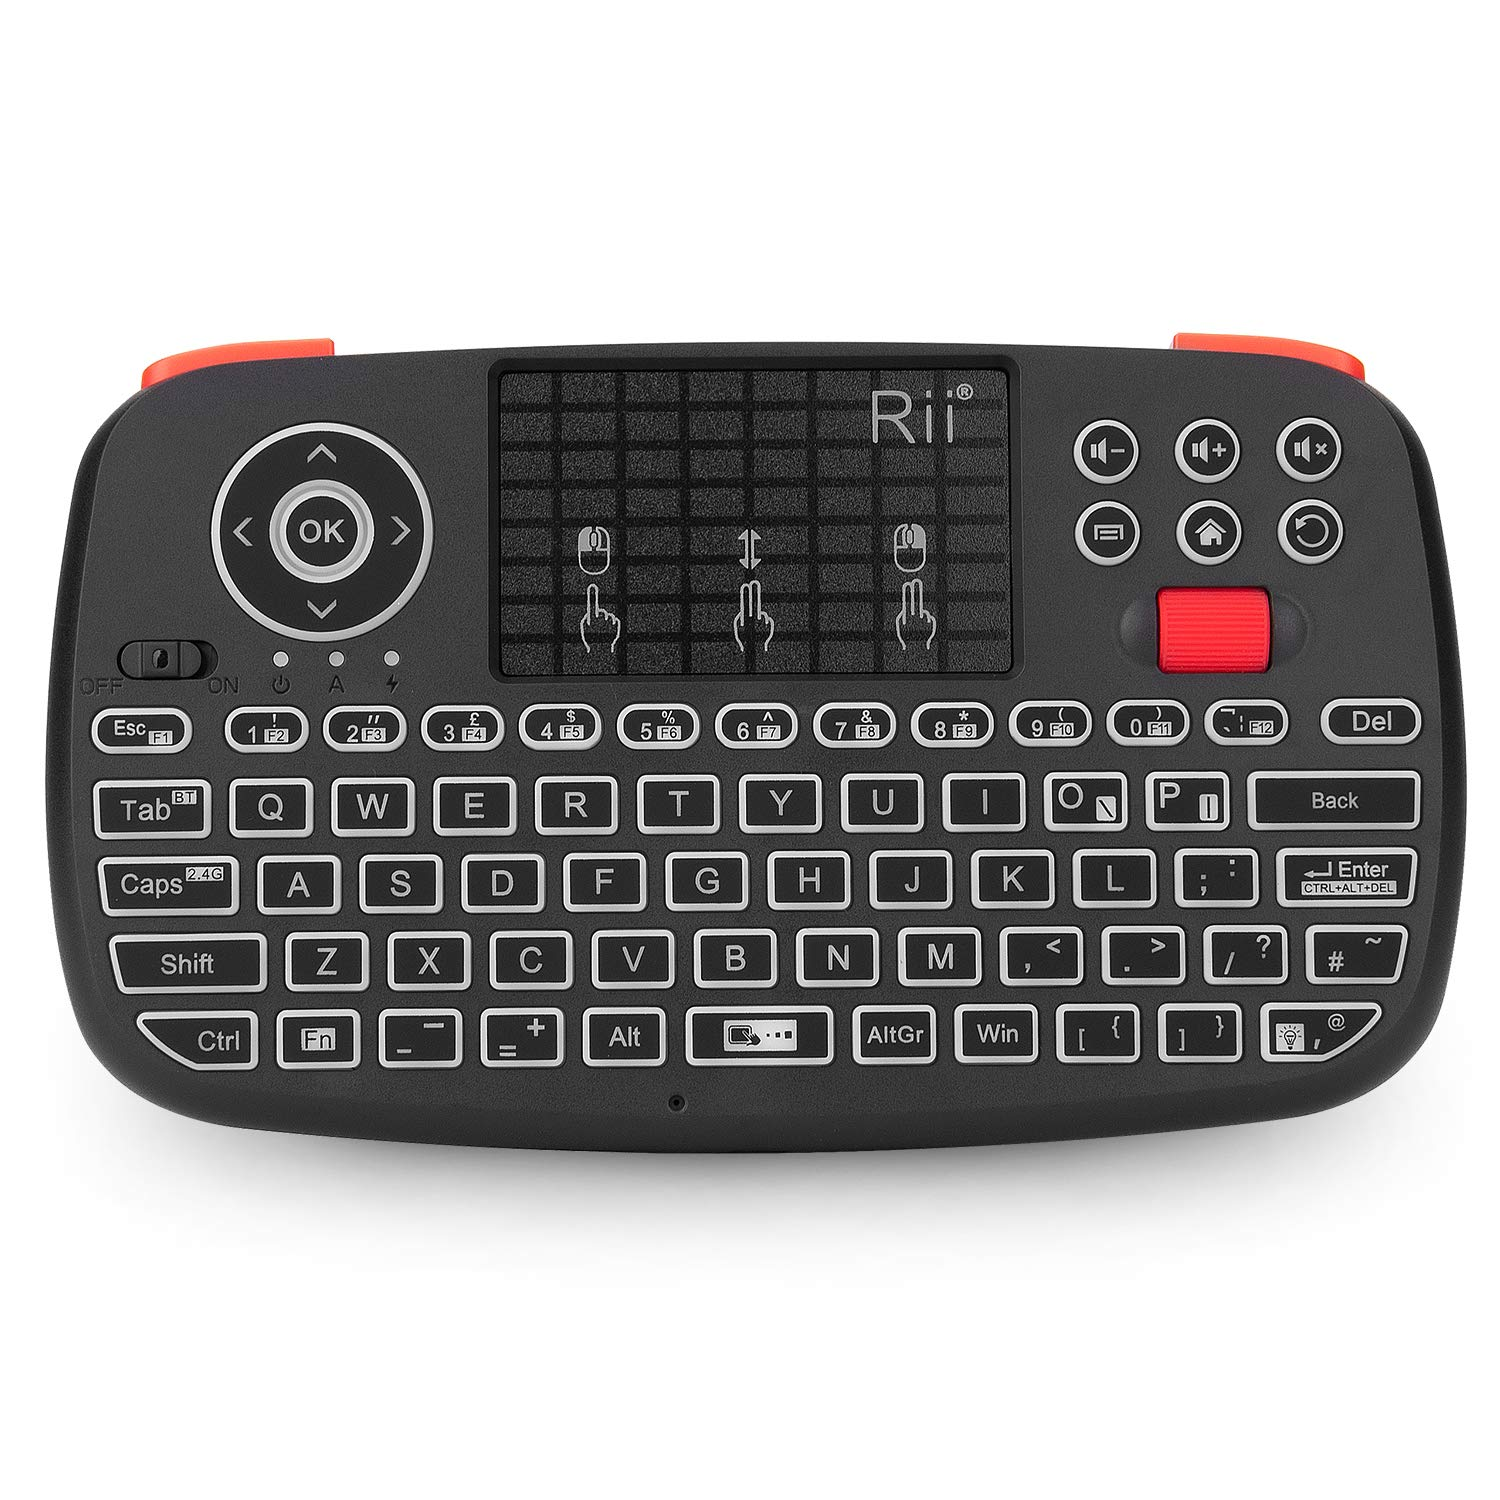 Simple vsky?RIII8 Air Mouse Pad Remote Control 2.4GHz Wireless Mouse Keyboard Android XBMC PS4 Raspberry Pi With Touchpad and Multimedia Keys for HTPC PS3 XBOX360 Android TV Box: Amazon.es: Electrónica